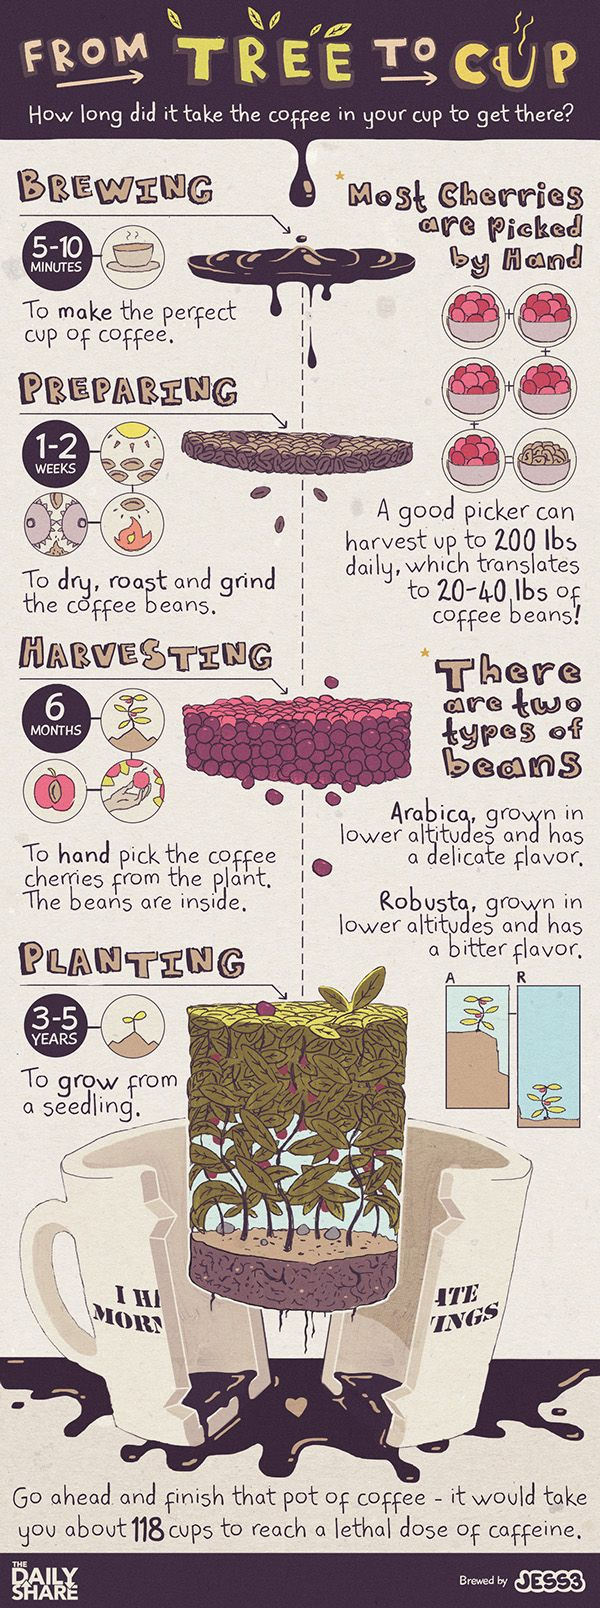 #Coffee : From Tree to Cup | #Infographic